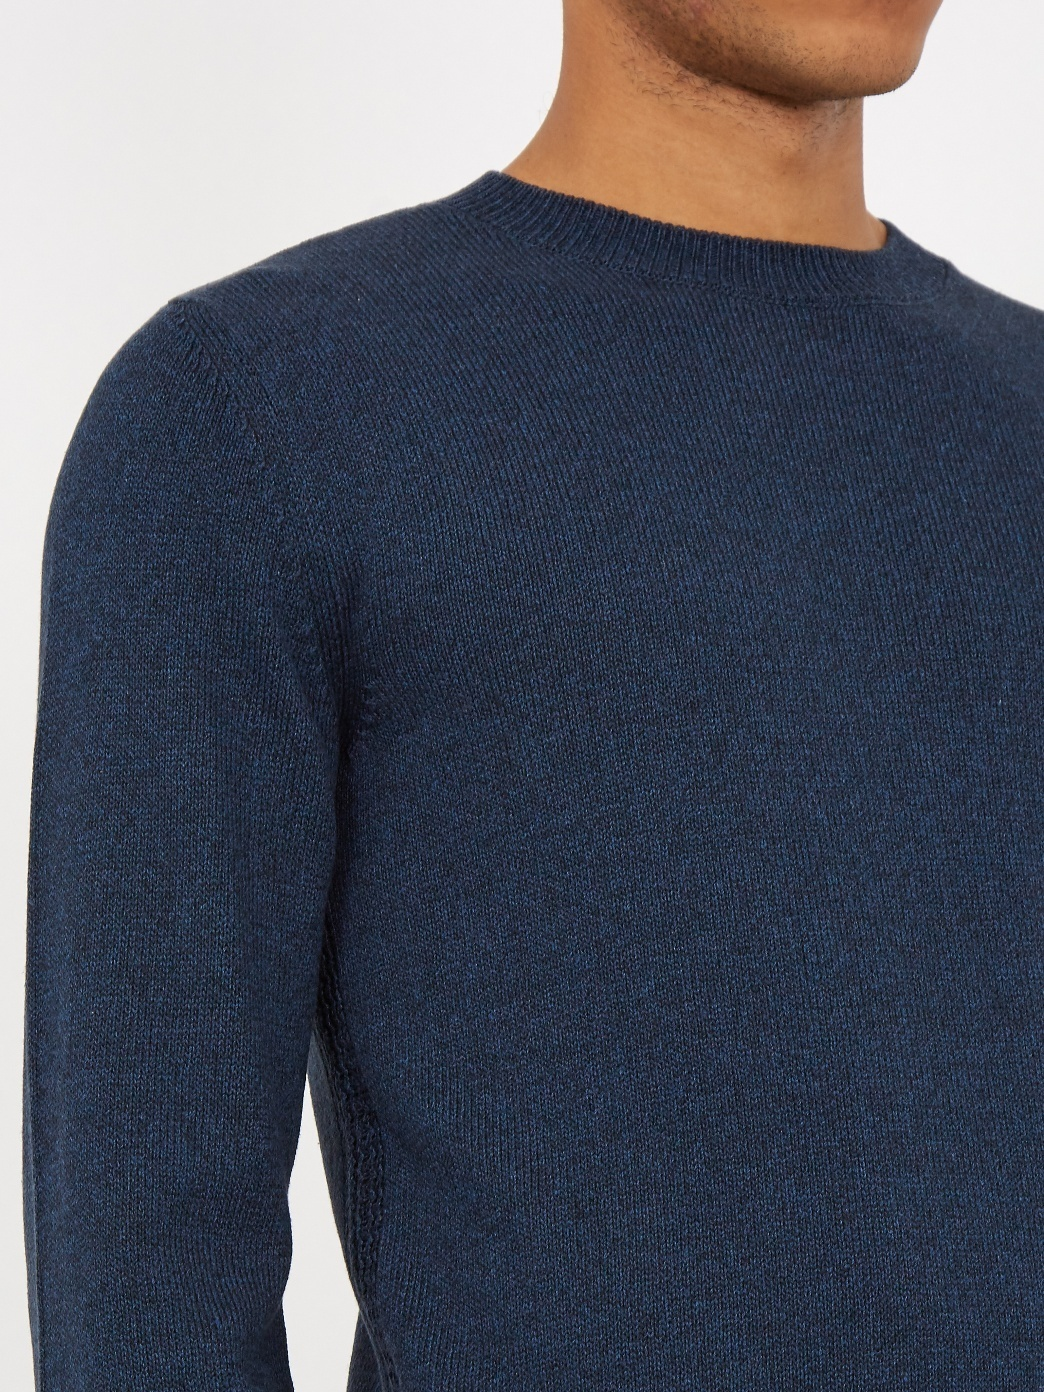 【VIPセール】A.P.C.★Norman cotton sweater セーター